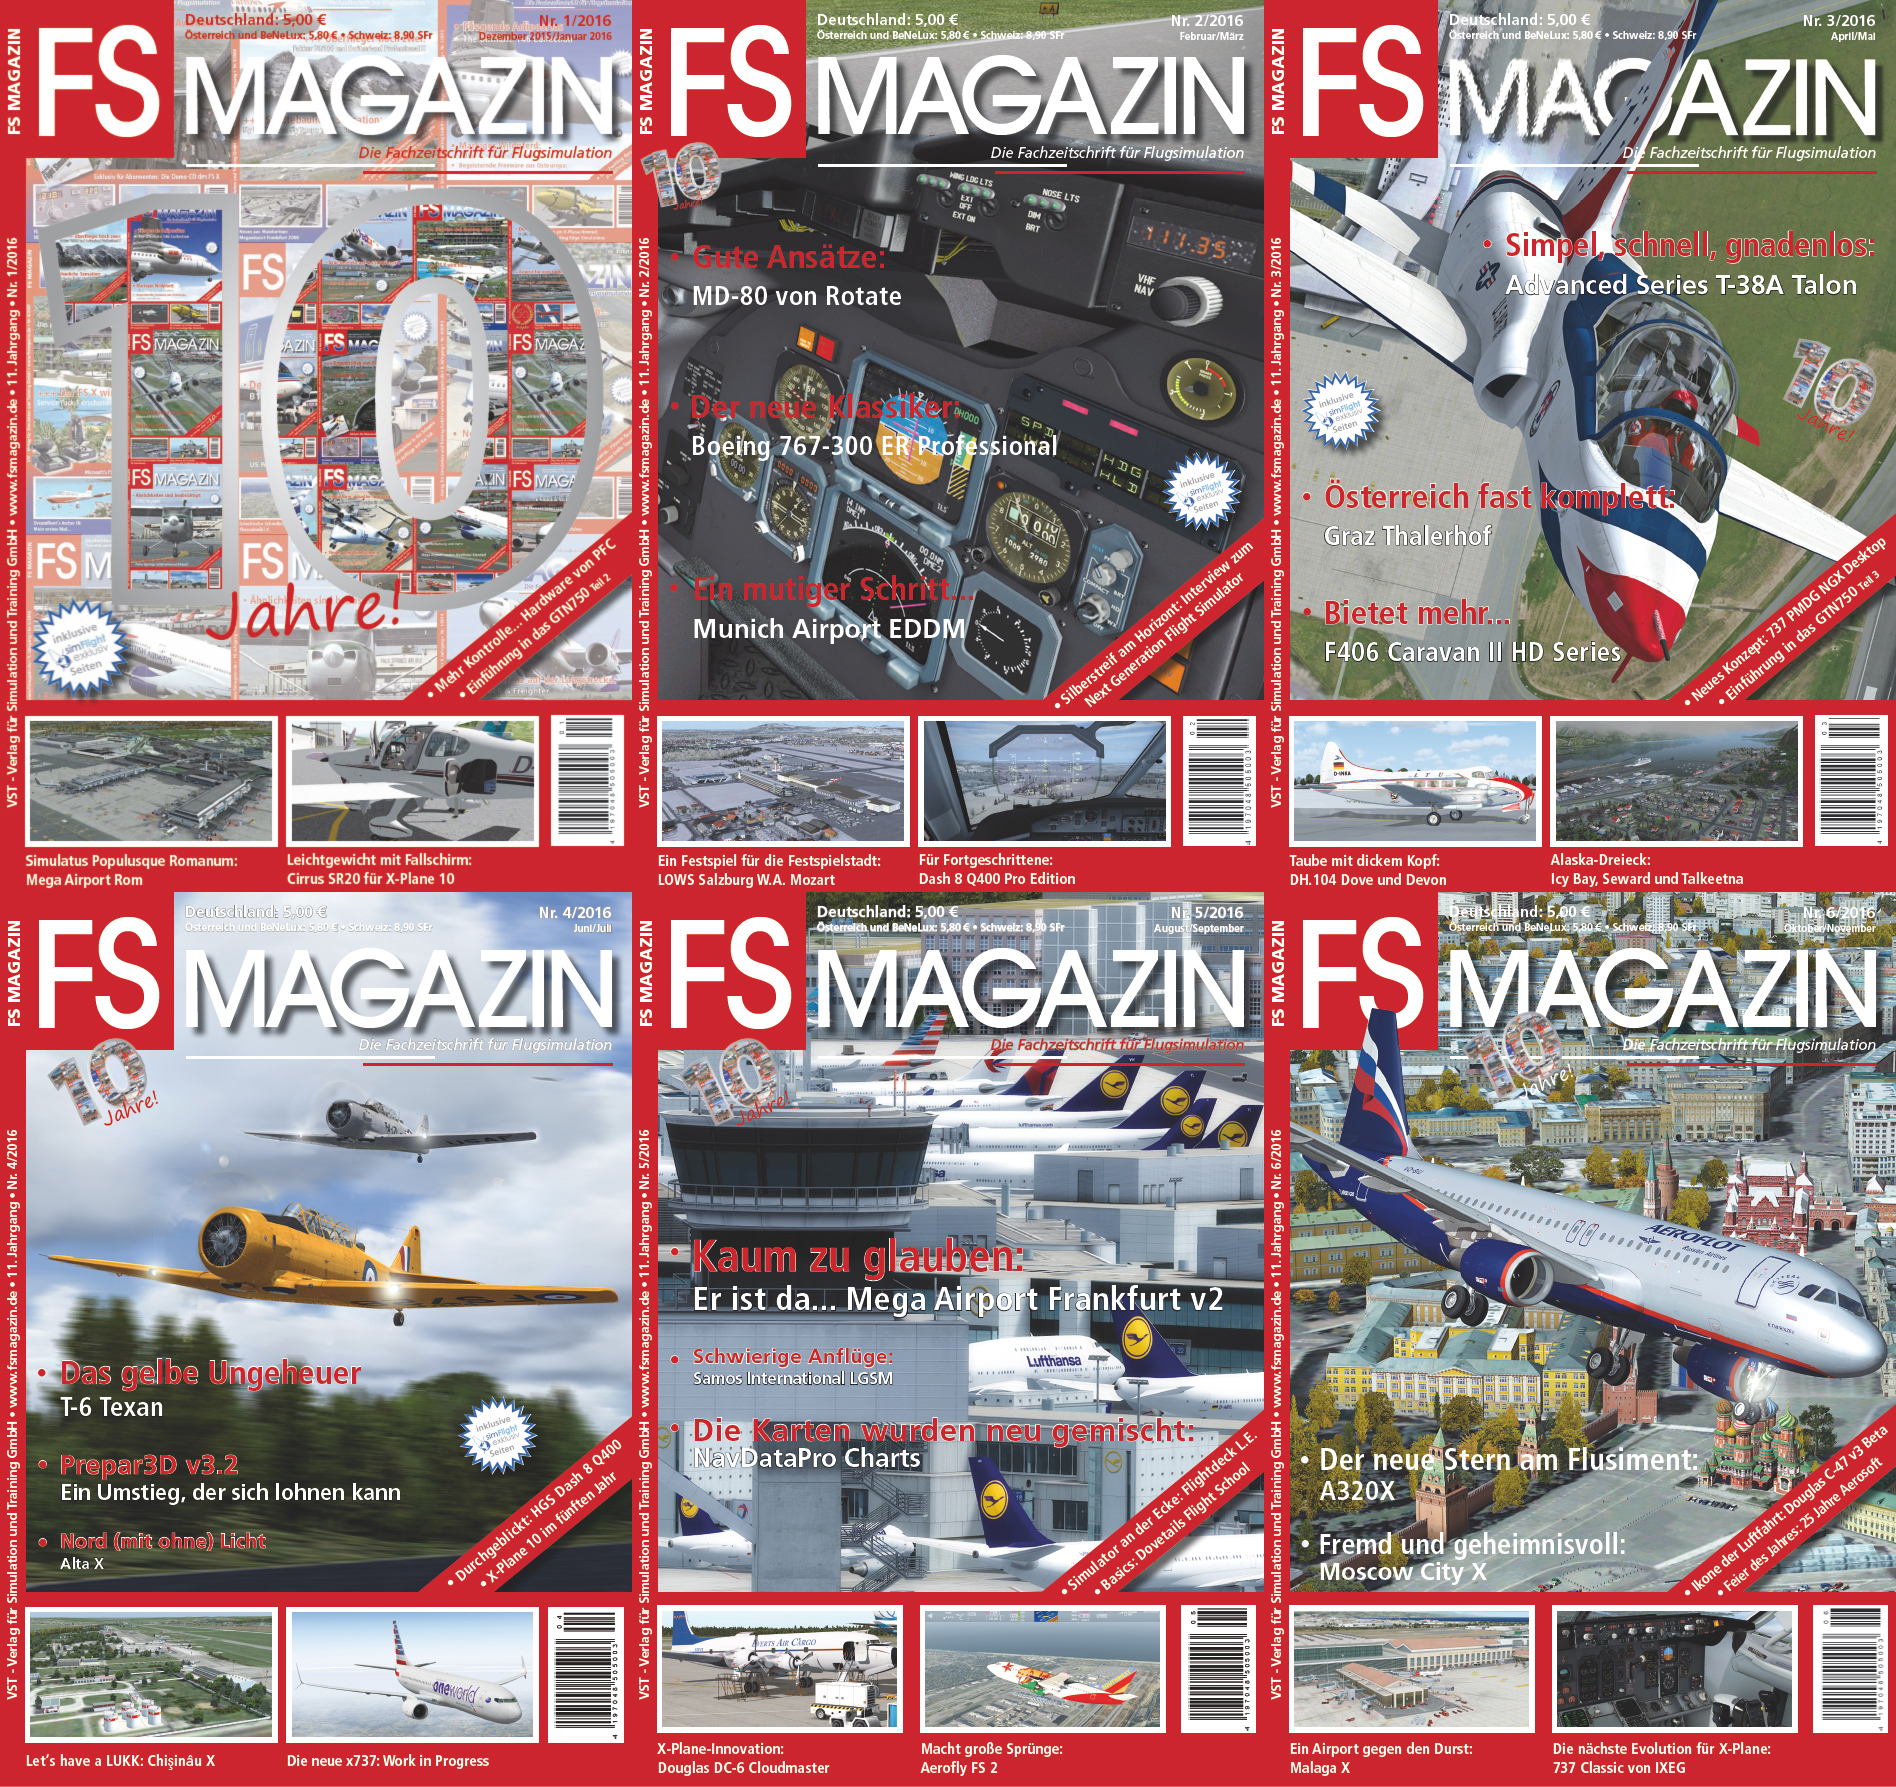 FS MAGAZIN - VOLUME 2016